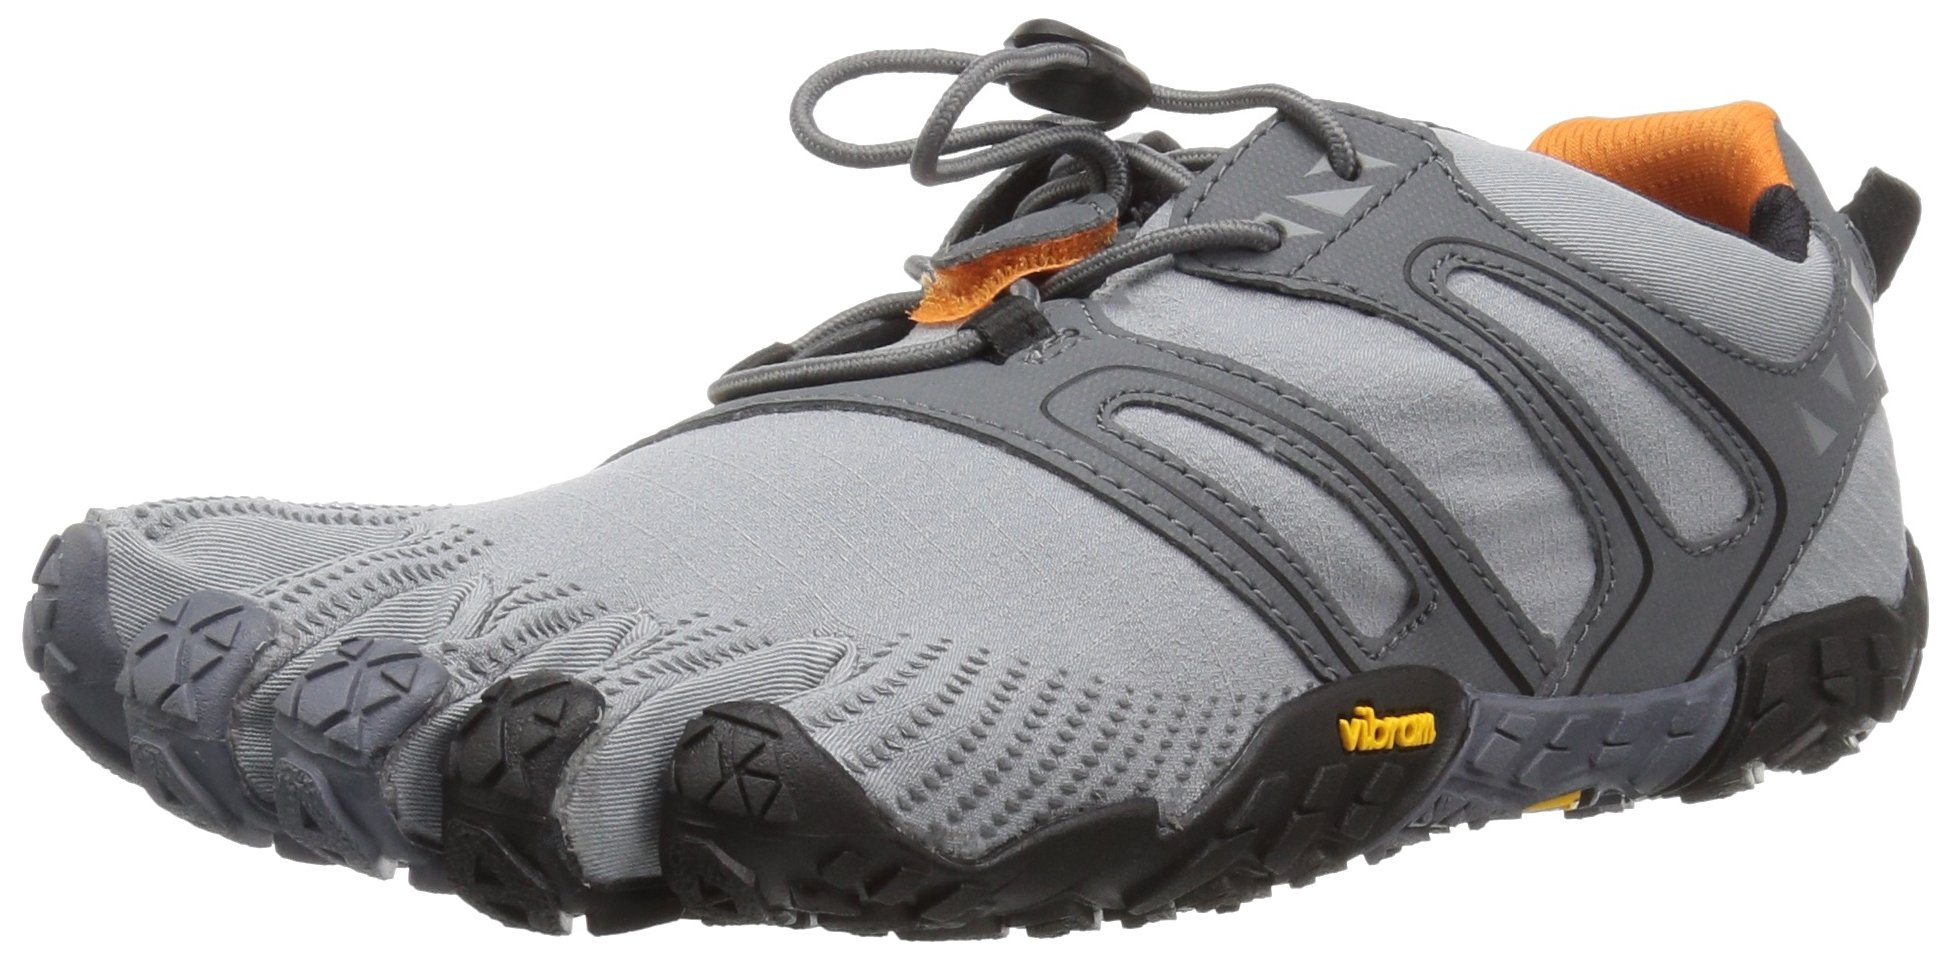 Vibram Men's V Trail Runner, Grey/Black/Orange, 9.5-10 M US/43 EU by Vibram